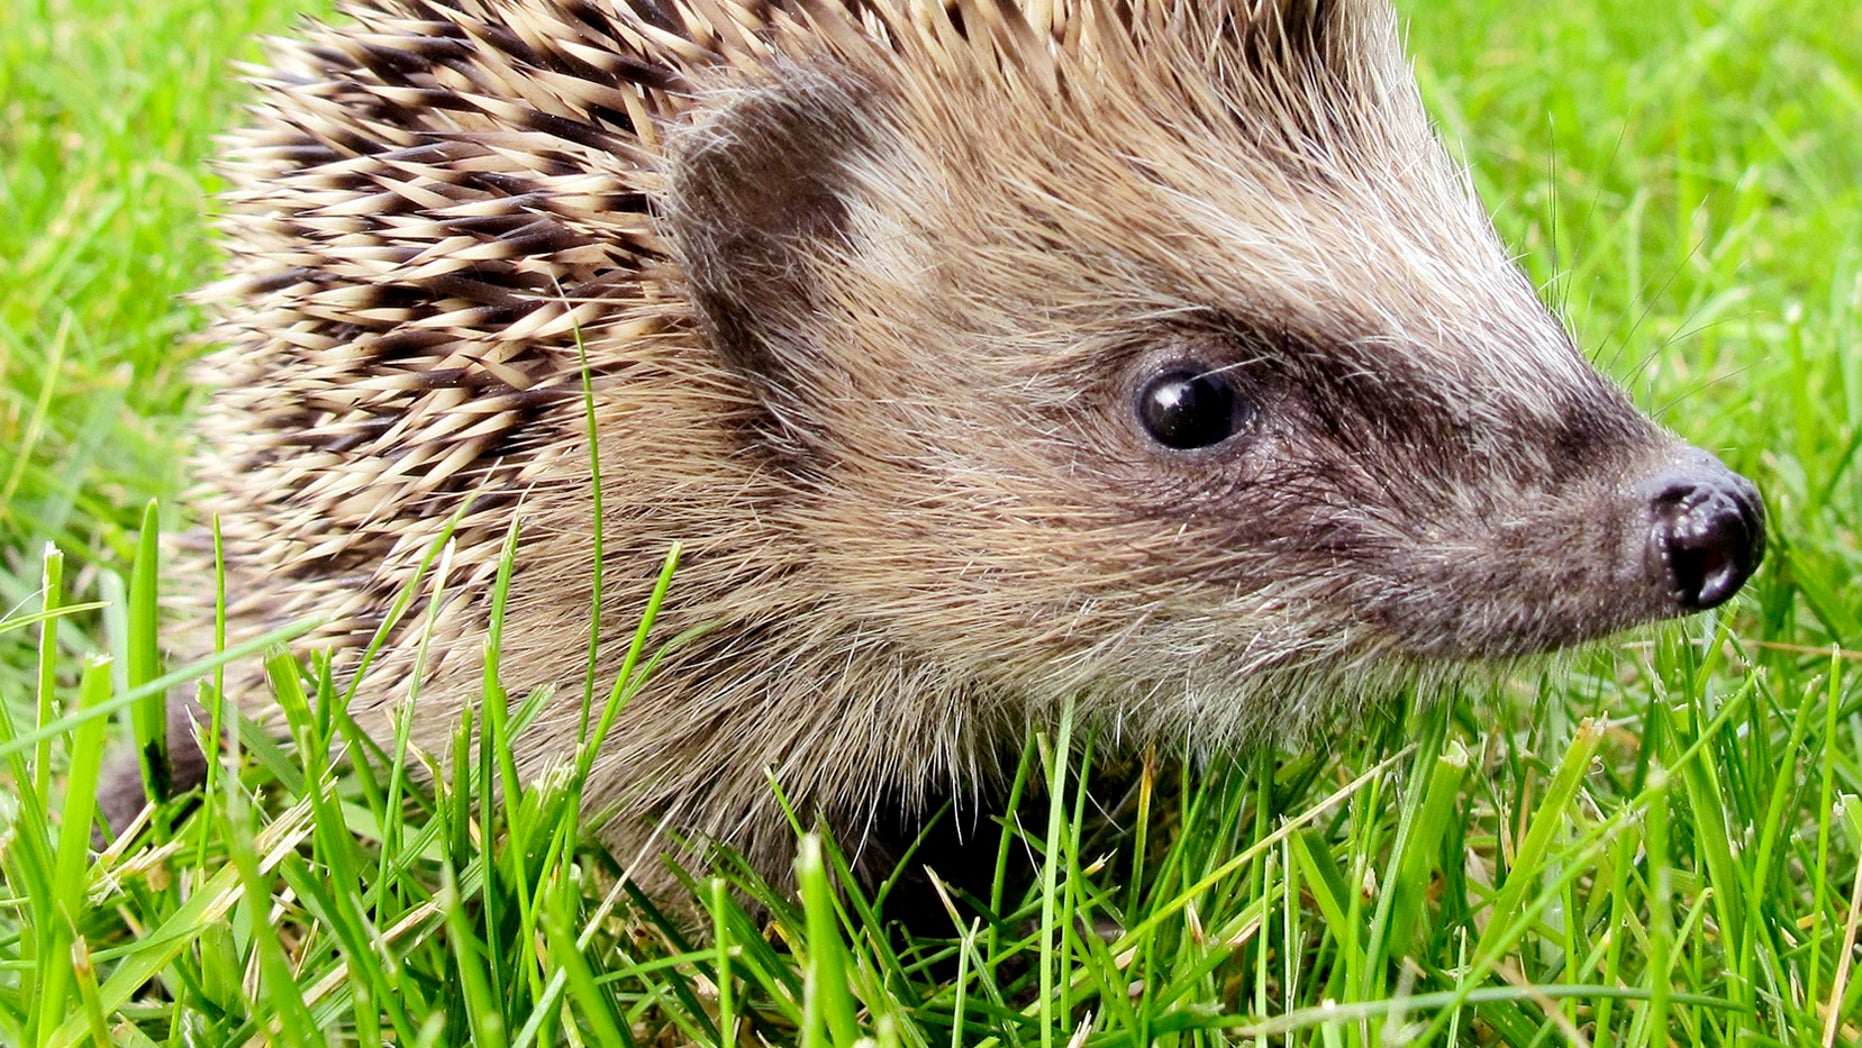 A baby hedgehog walks through grass looking for something to eat on a lawn in Frankfurt, central Germany, Friday, Sept. 24, 2010. The hedgehog belongs to a family of five hedgehogs that lost their mother that was run over by a car and killed. (AP Photo/Michael Probst)